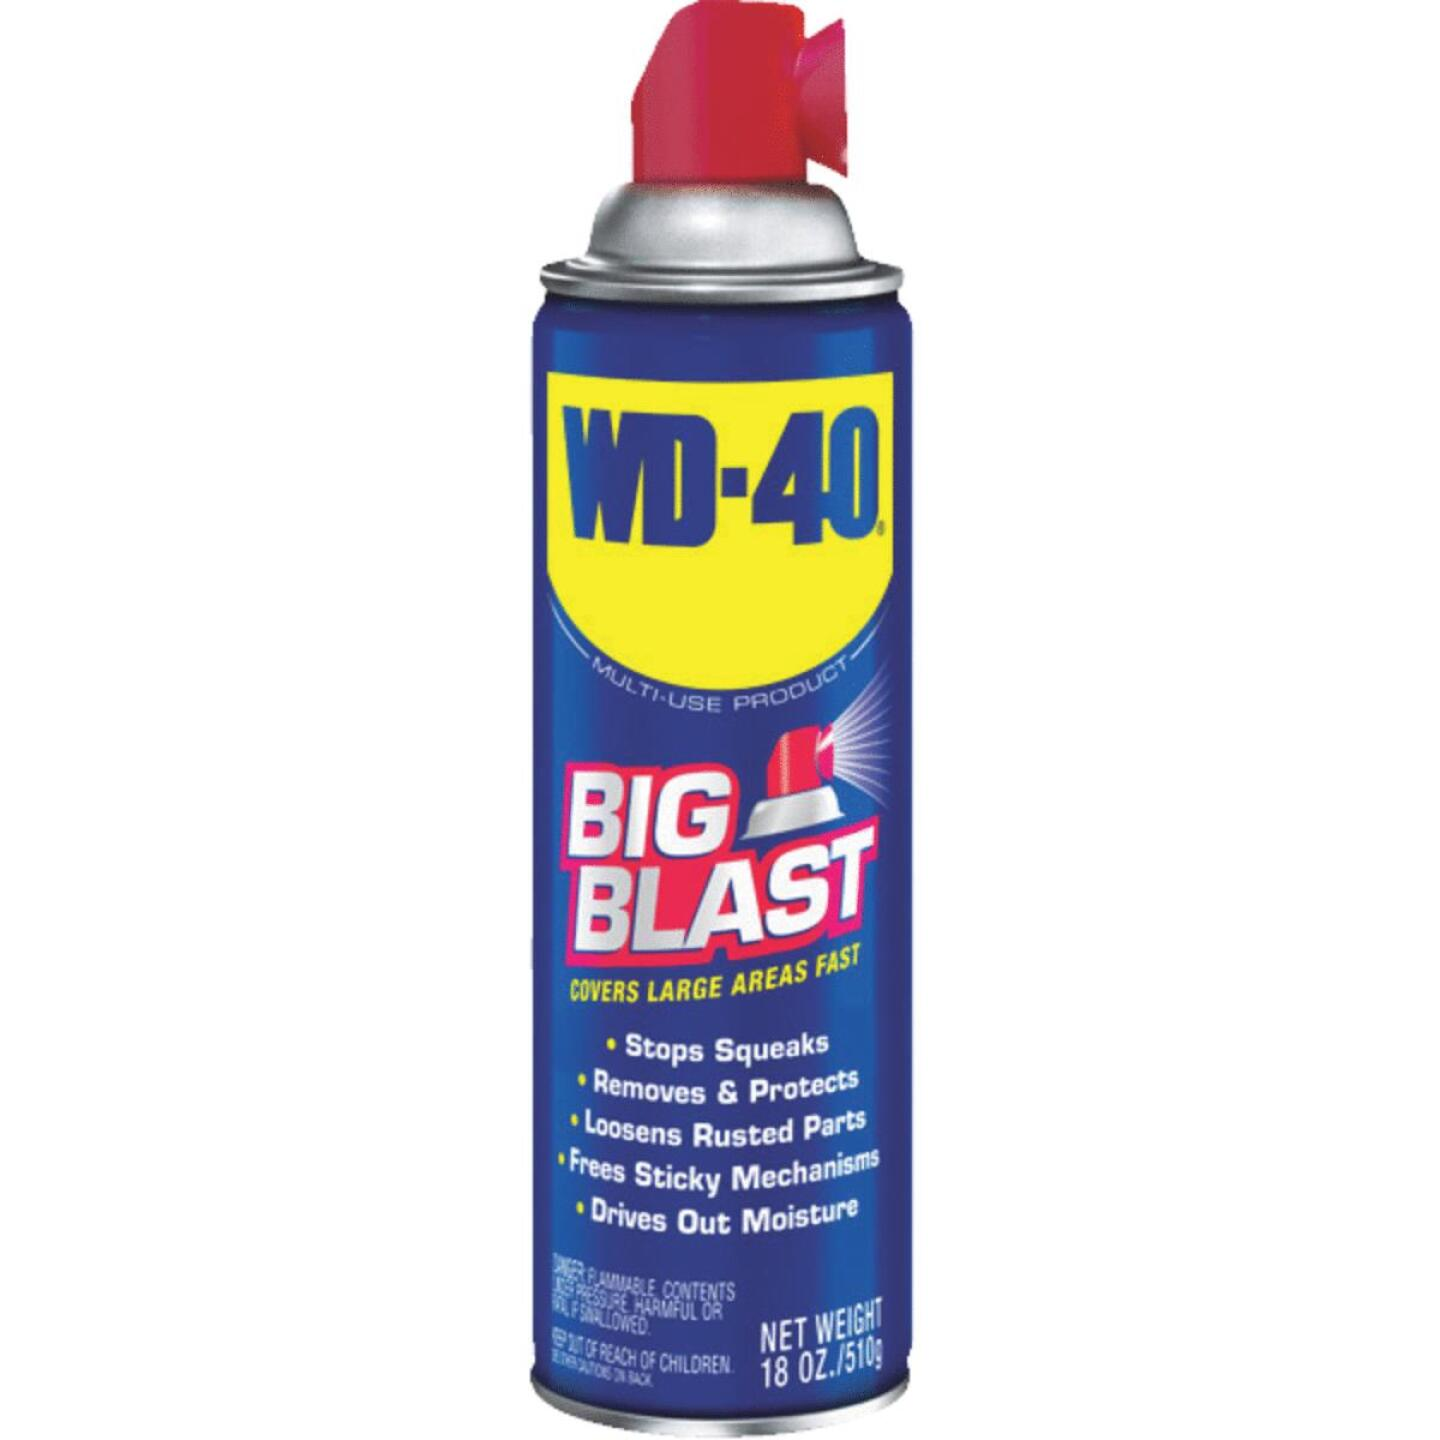 WD-40 Big Blast 18 Oz. Aerosol Multi-Purpose Lubricant Image 1